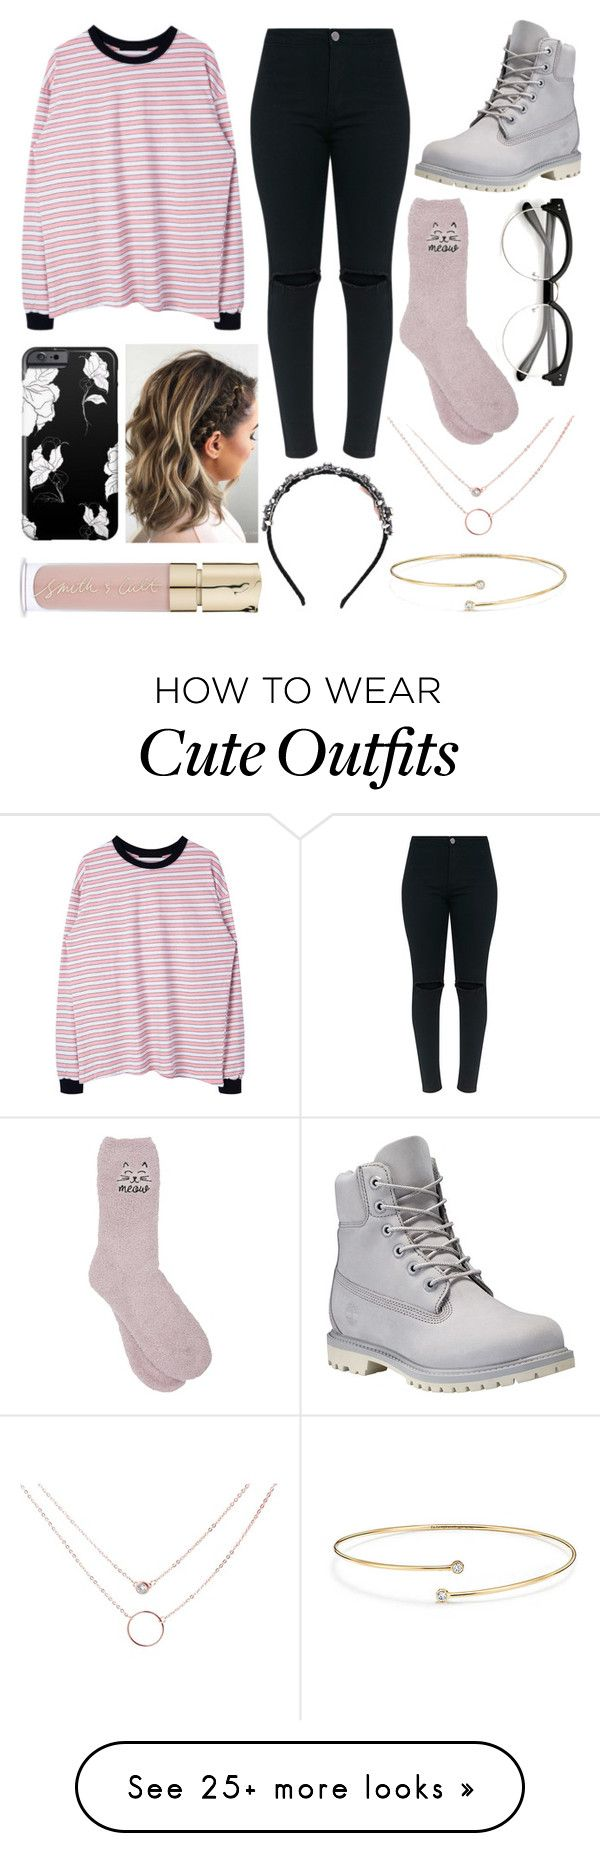 """""""Outfit #314"""" by selffandom on Polyvore featuring Timberland, M&Co, N°21, Smith & Cult and Elsa Peretti"""